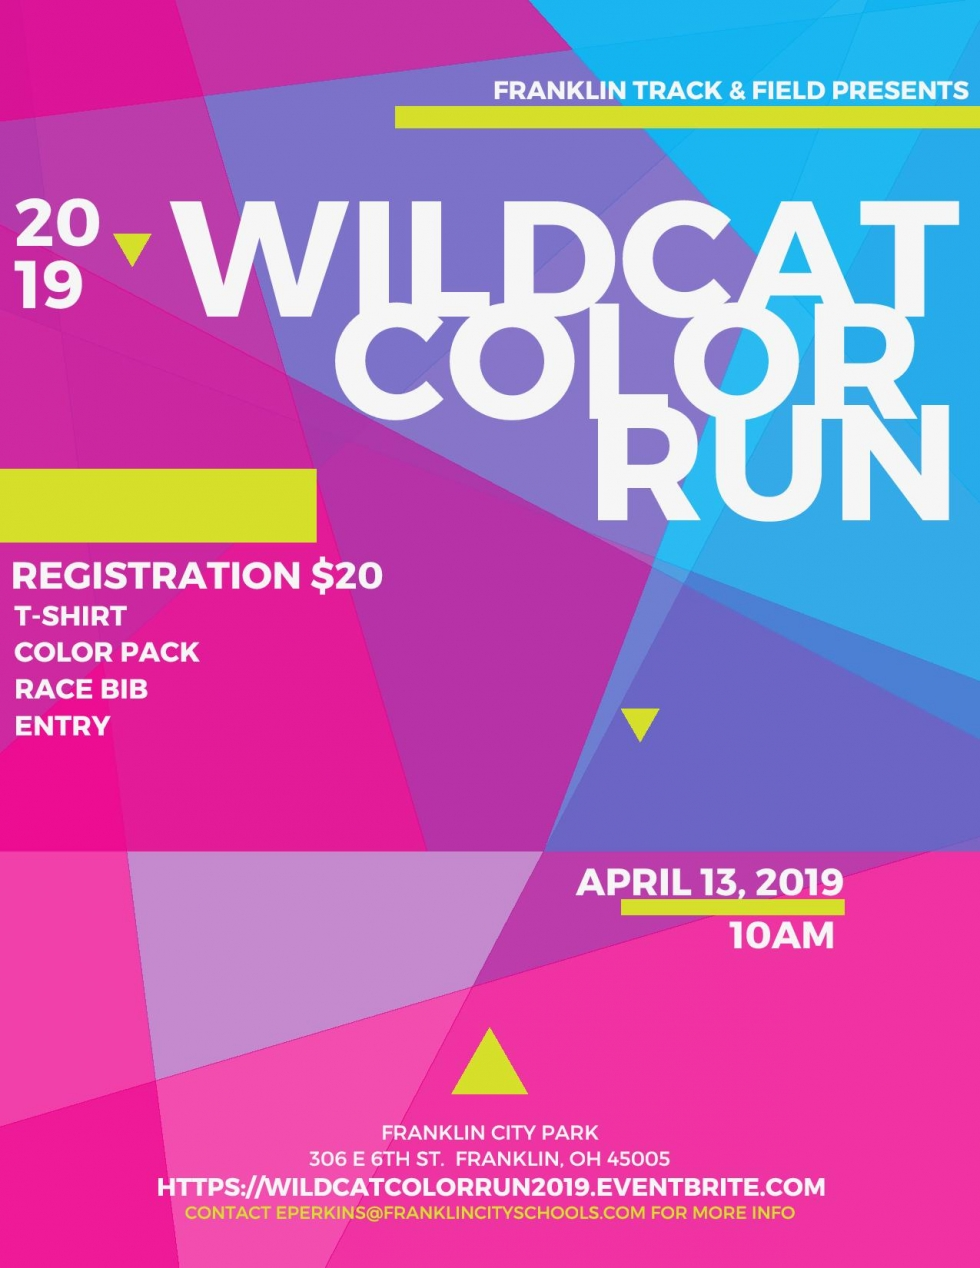 Wildcat Color Run